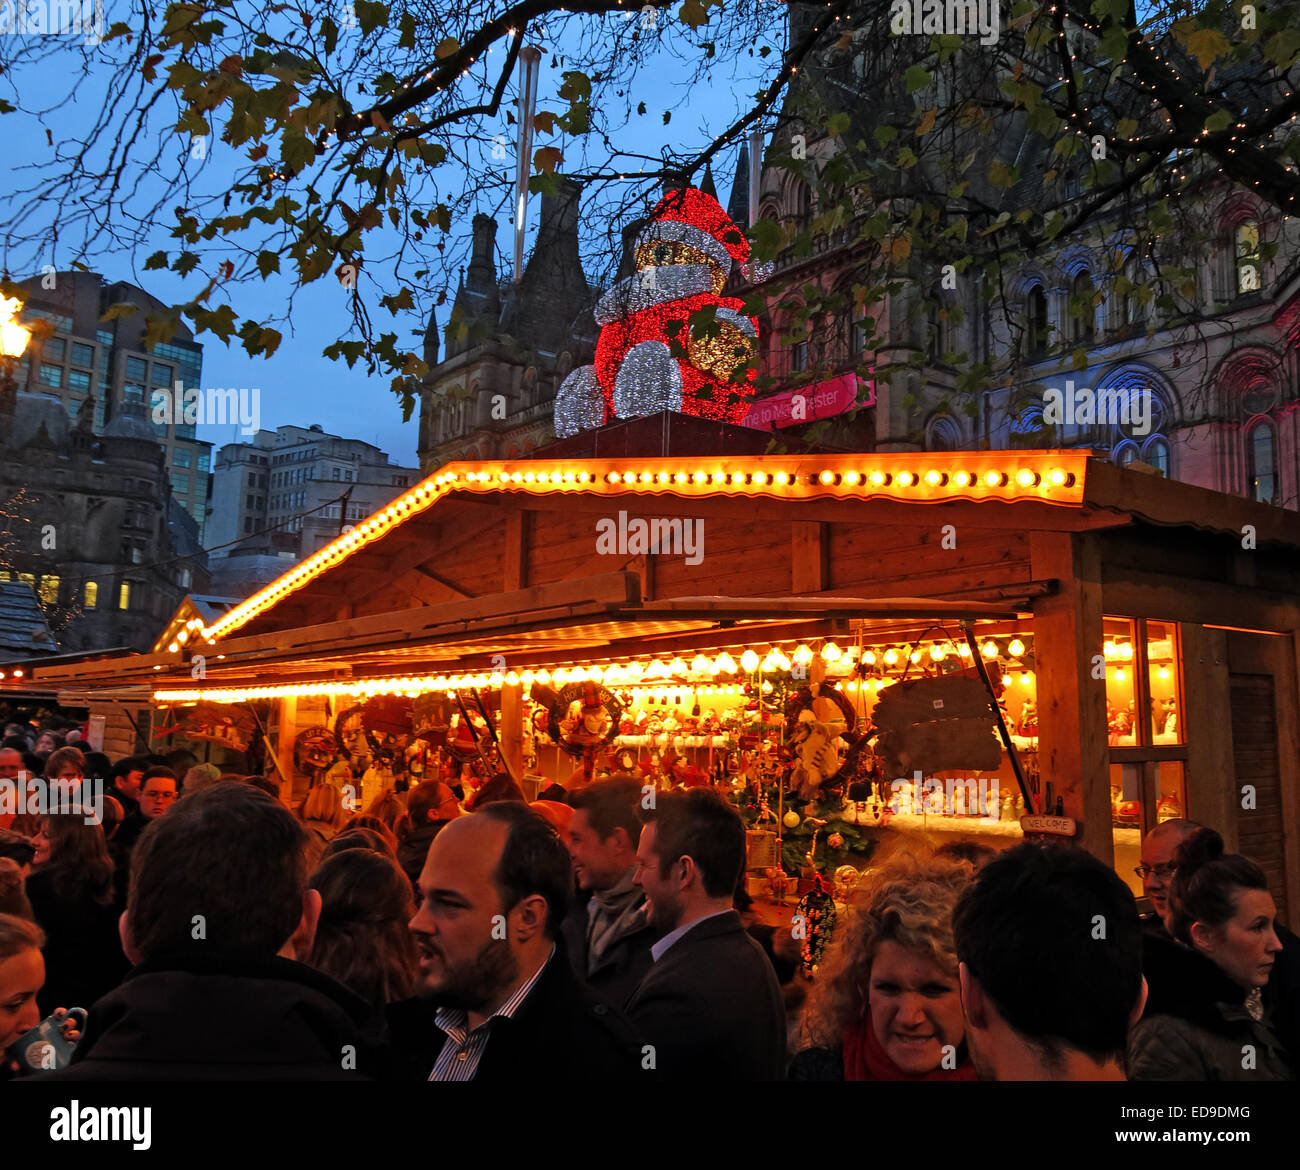 night,shot,nightshot,England,UK,at,dusk,GB,Great Britain,council,Manchester City Council,Town Hall,town,hall,town hall,international,lights,blue sky,people,enjoying,enjoy,citizens,drink,beer,popular,Santa,on,busy,crowded,crowds,Gotonysmith